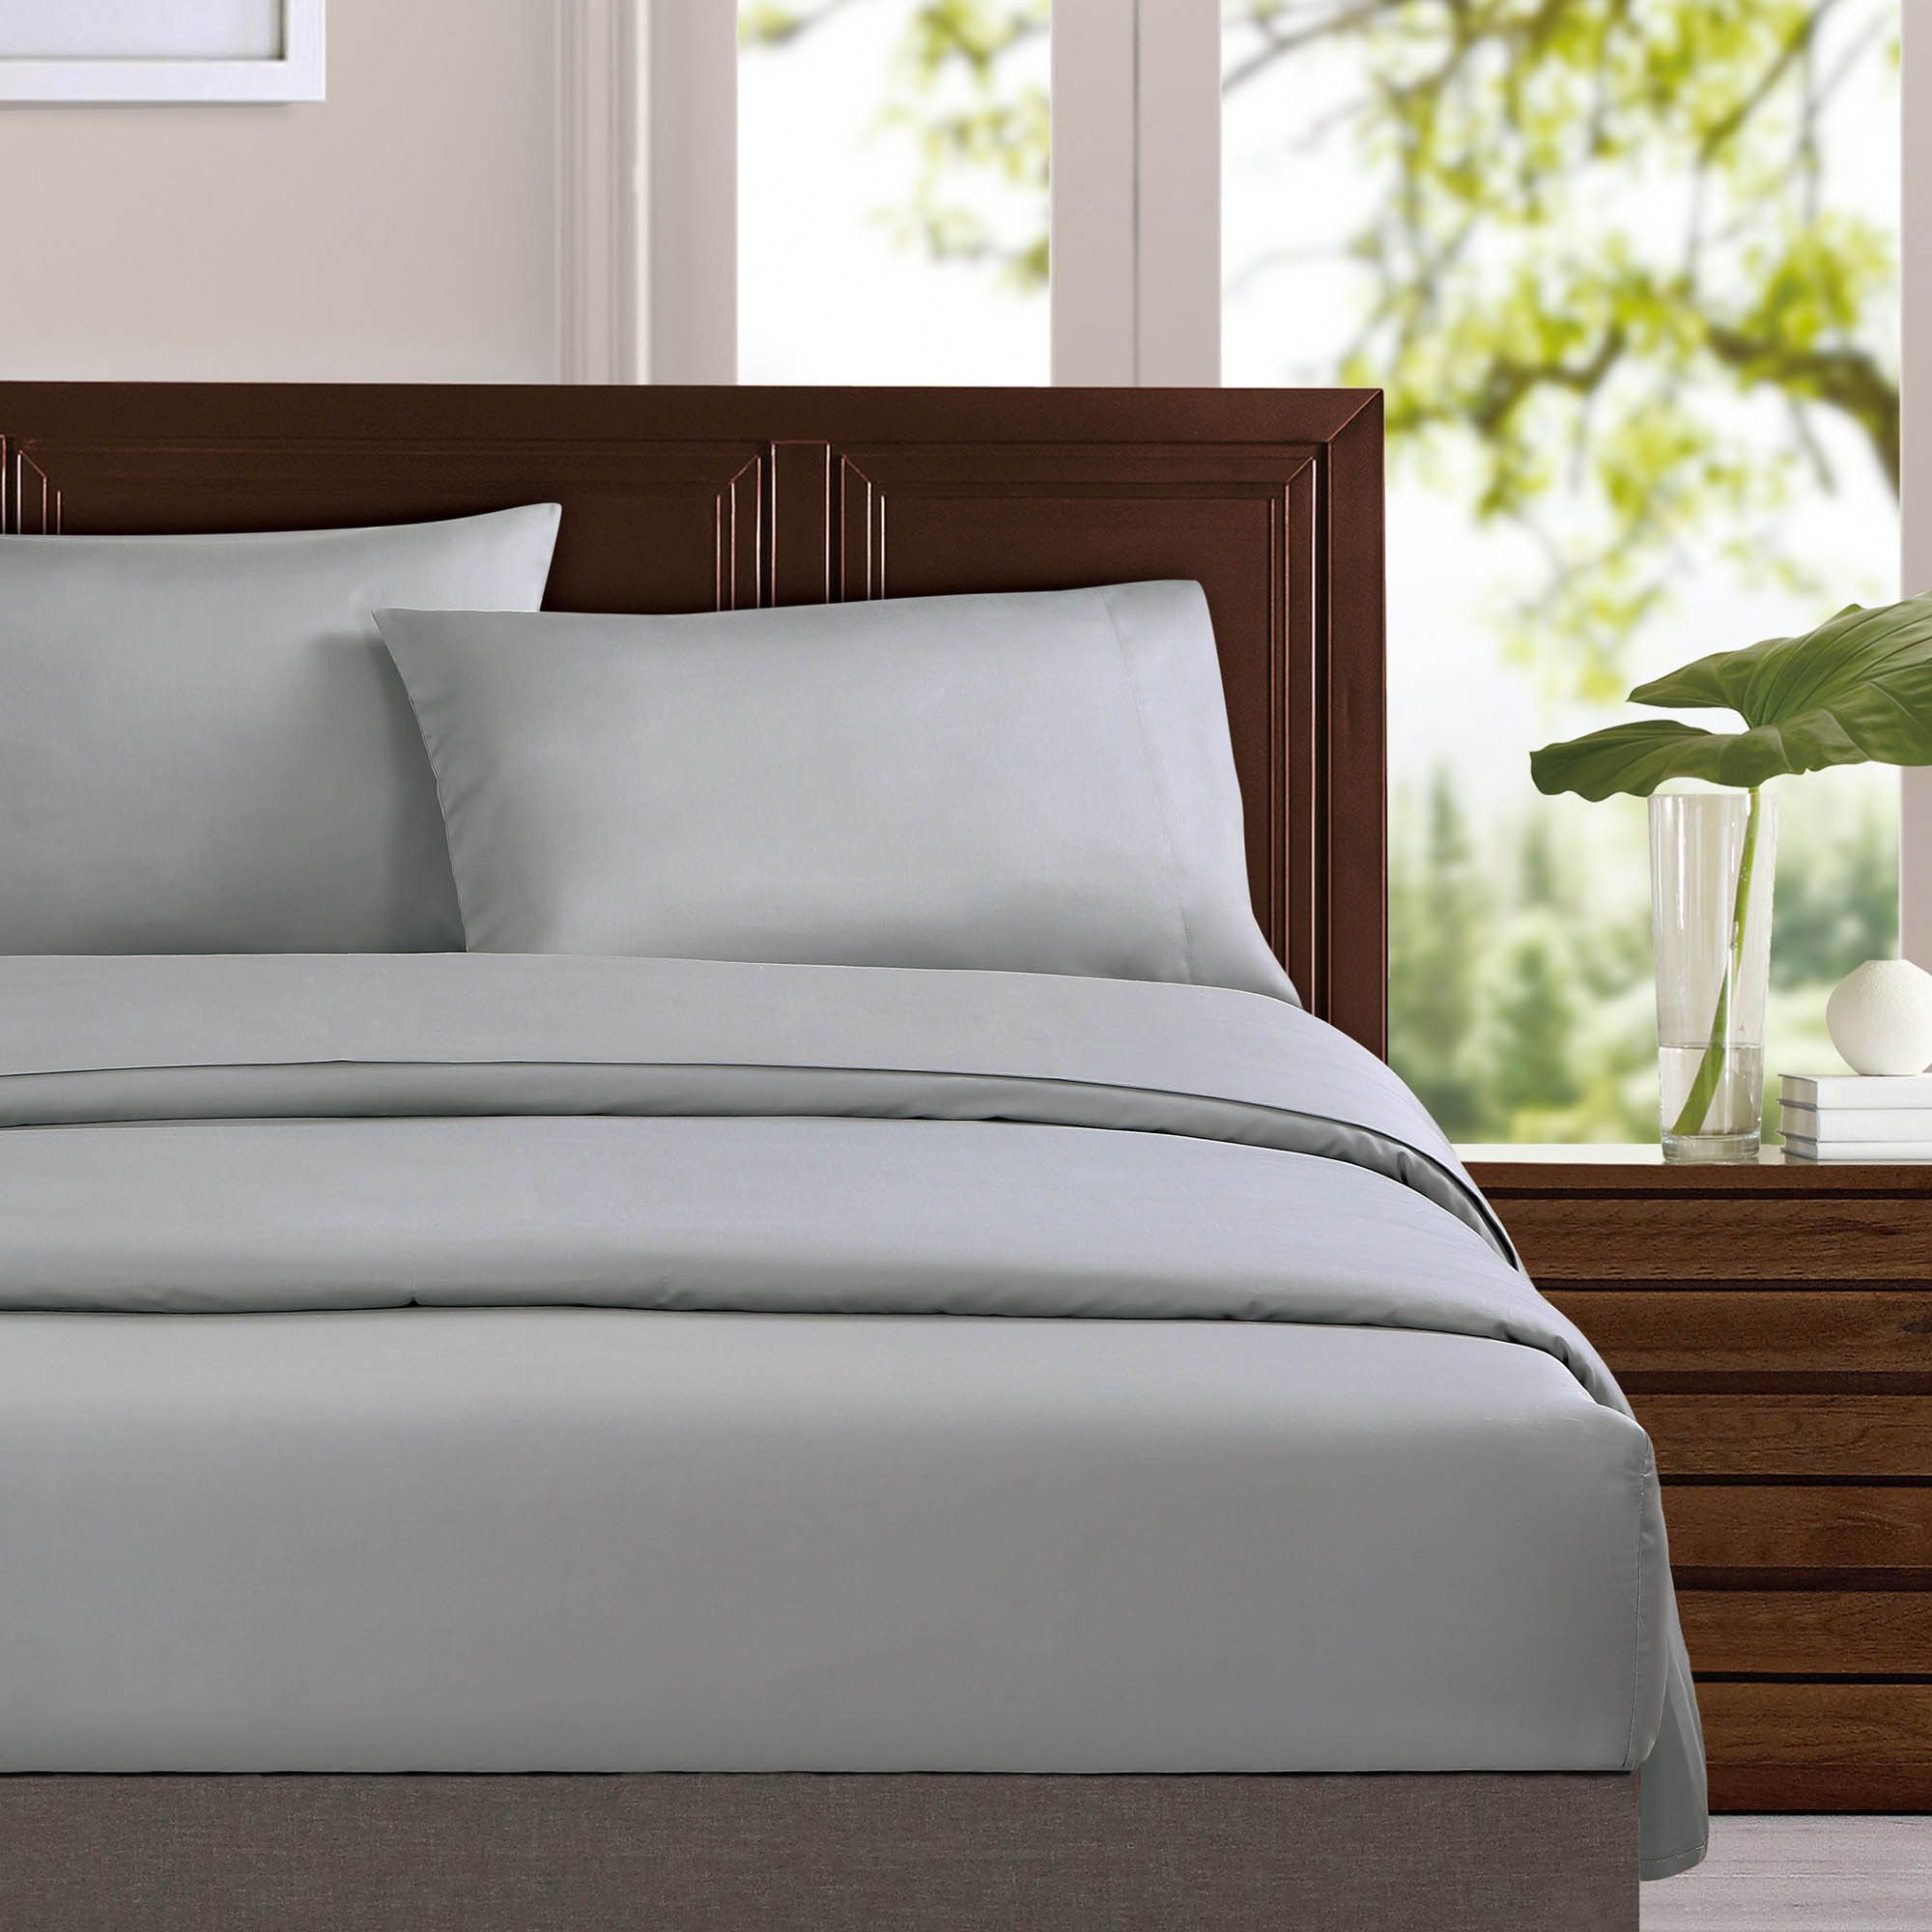 These 100percent organic cotton sheets are GOTS and OE 100 Standard